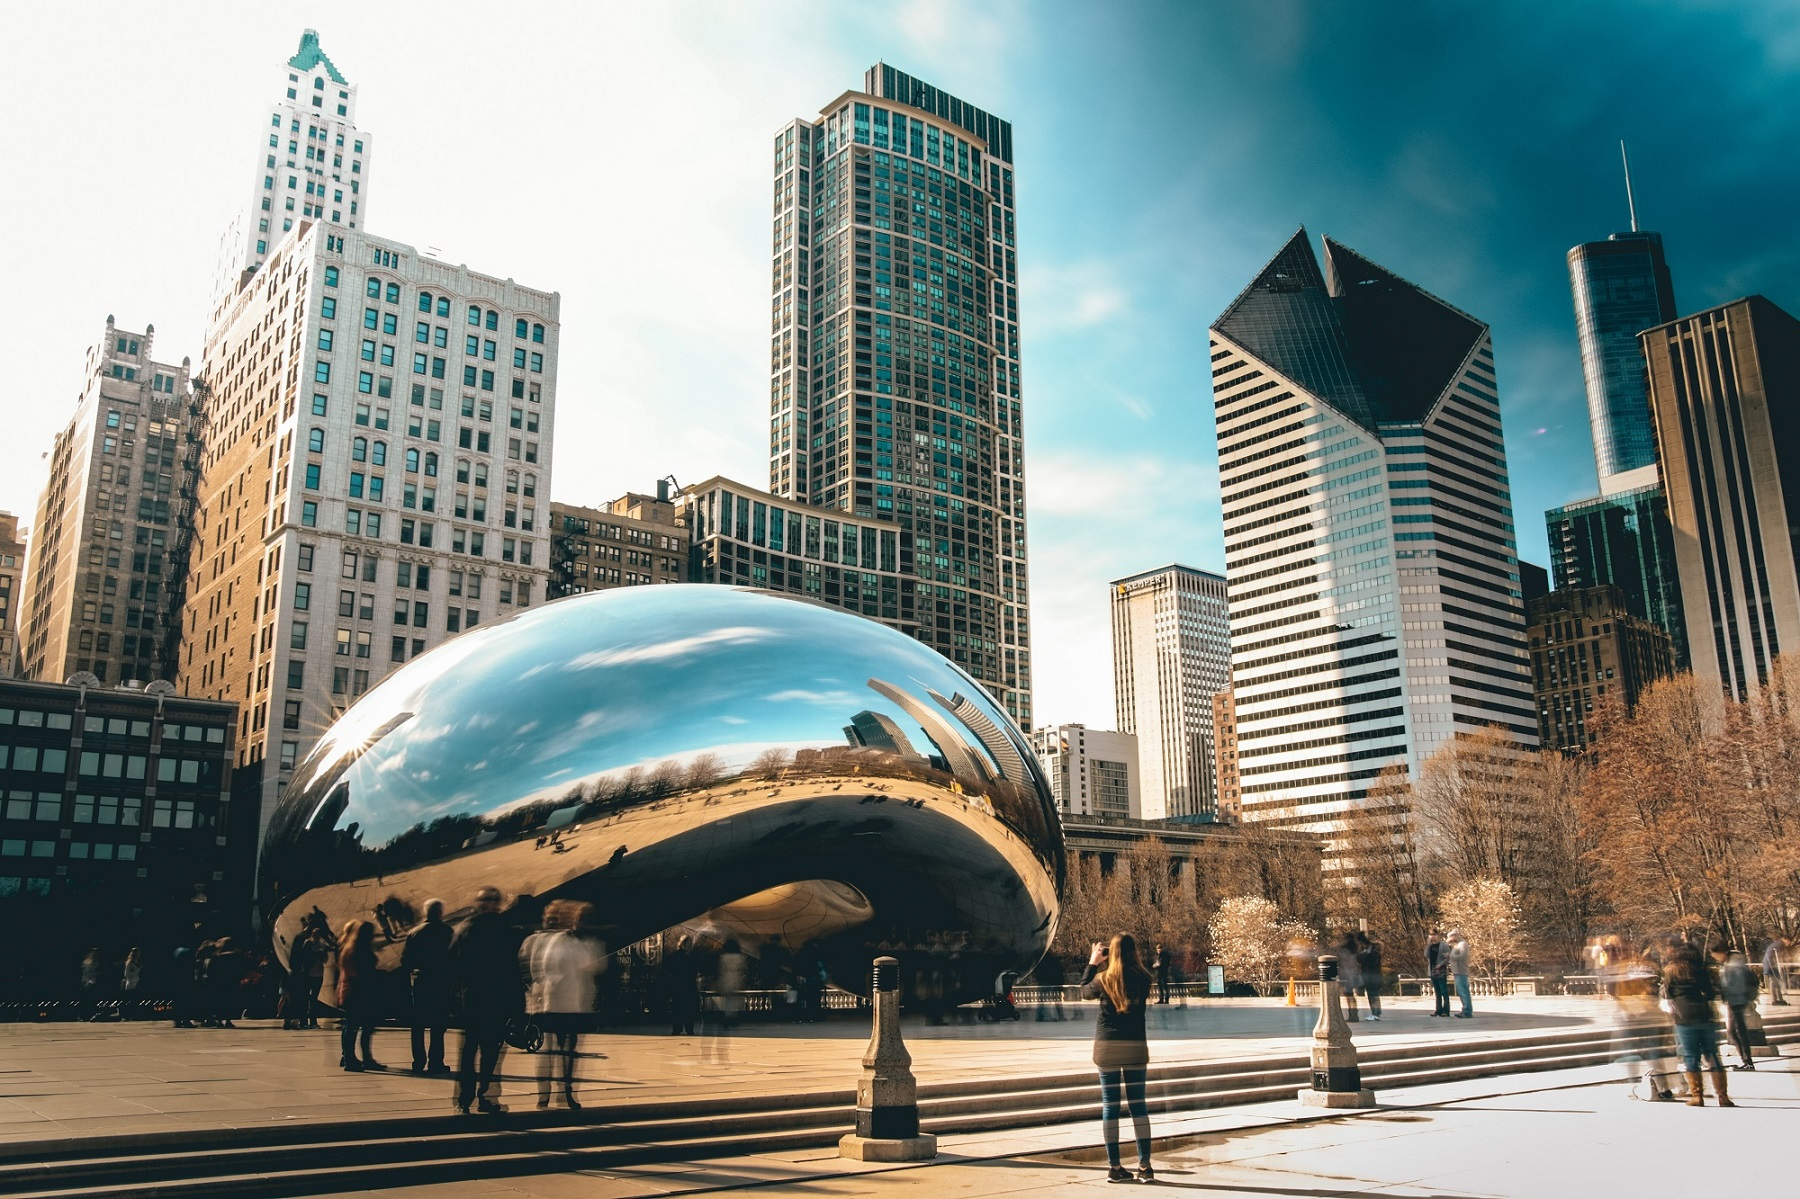 Chicago Bean - Cloud Gate